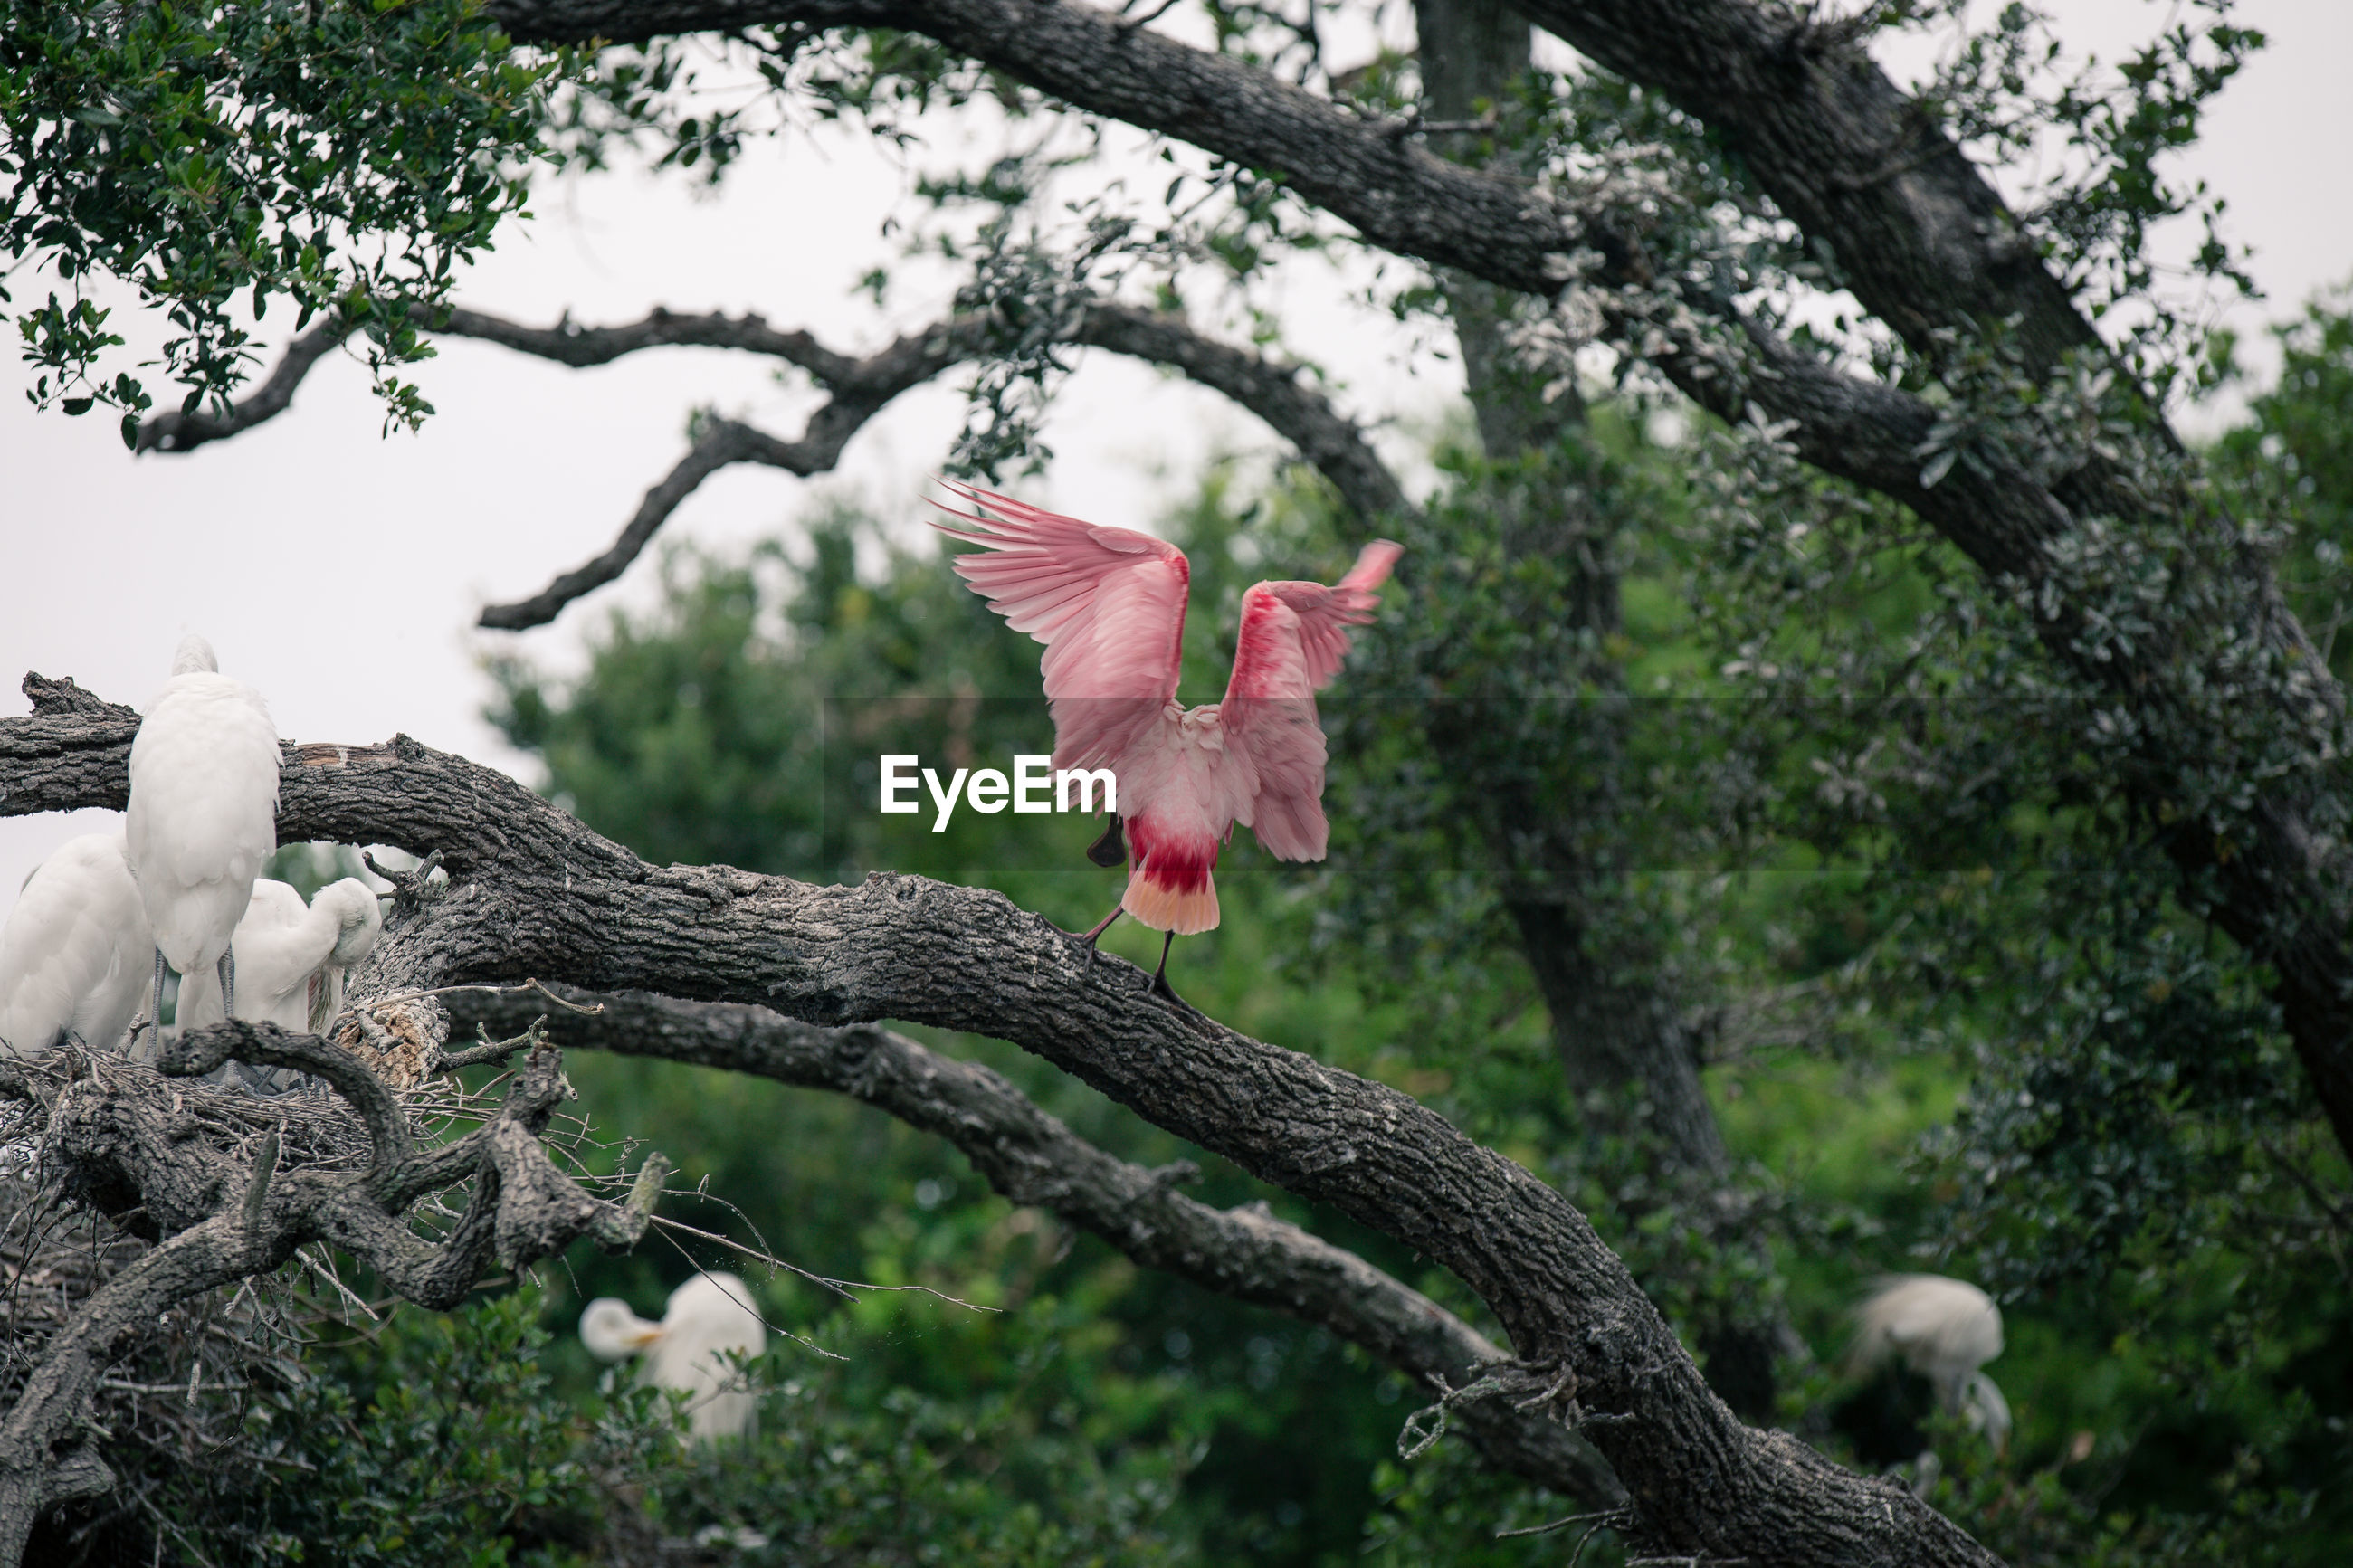 Low angle view of roseate spoonbills perching on branch in forest